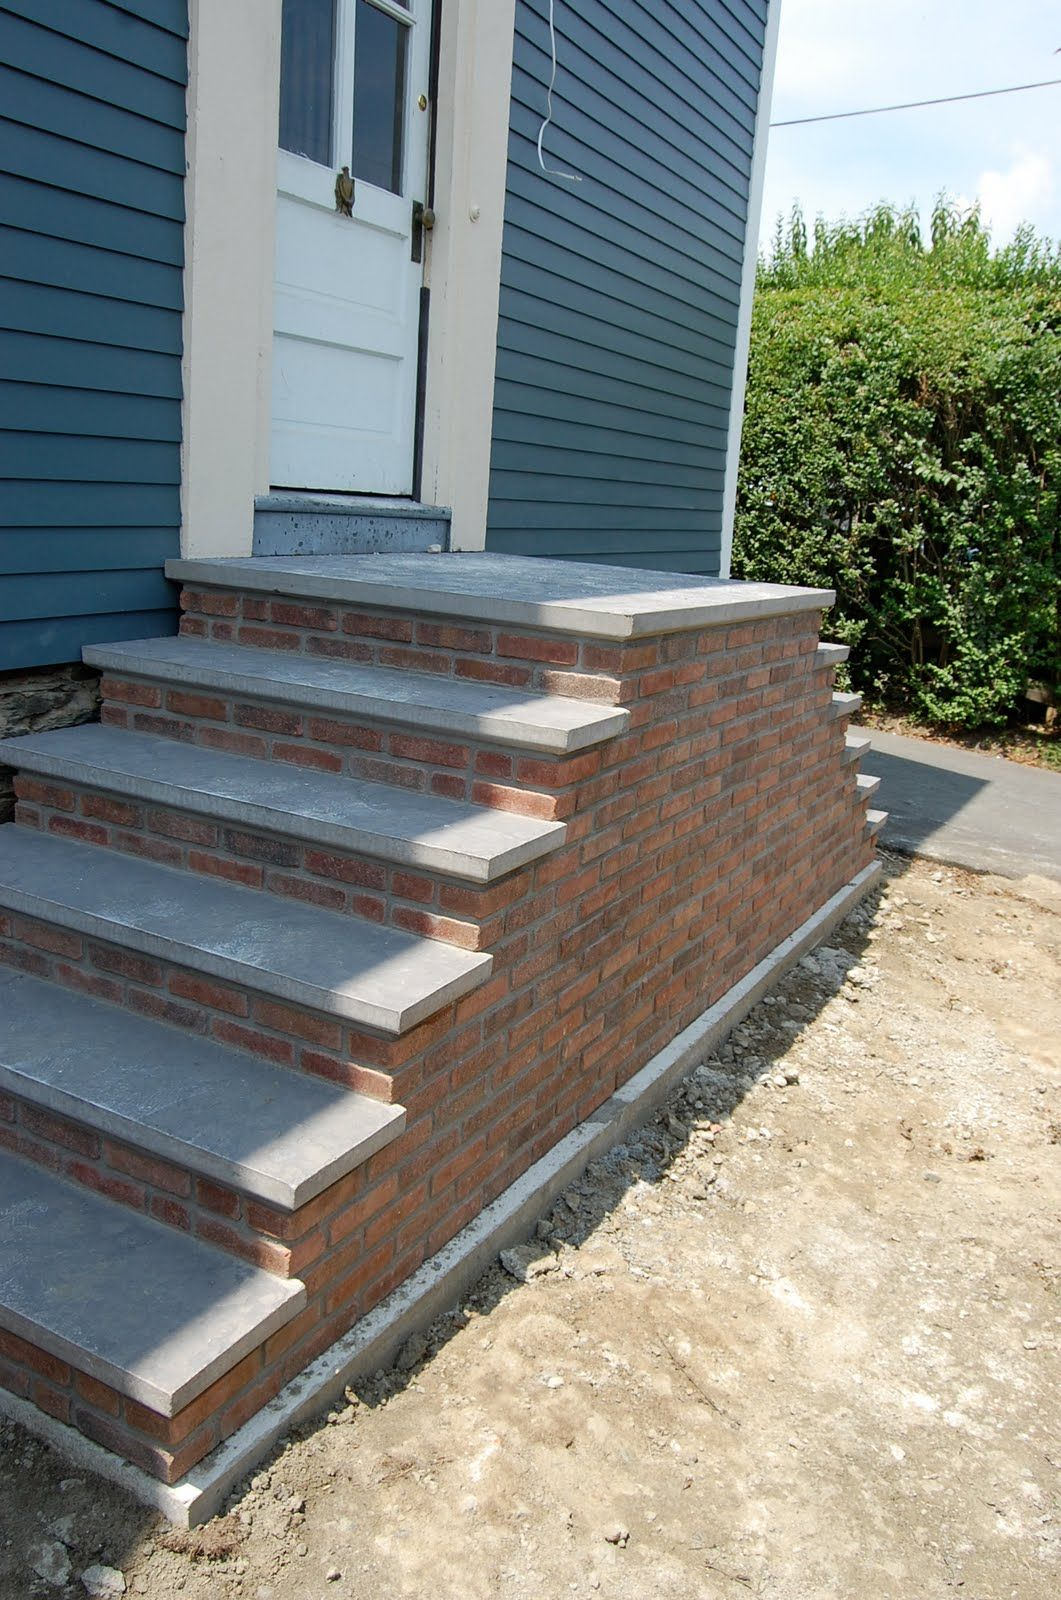 Stair mesmerizing home exterior design ideas using for Brick steps design ideas